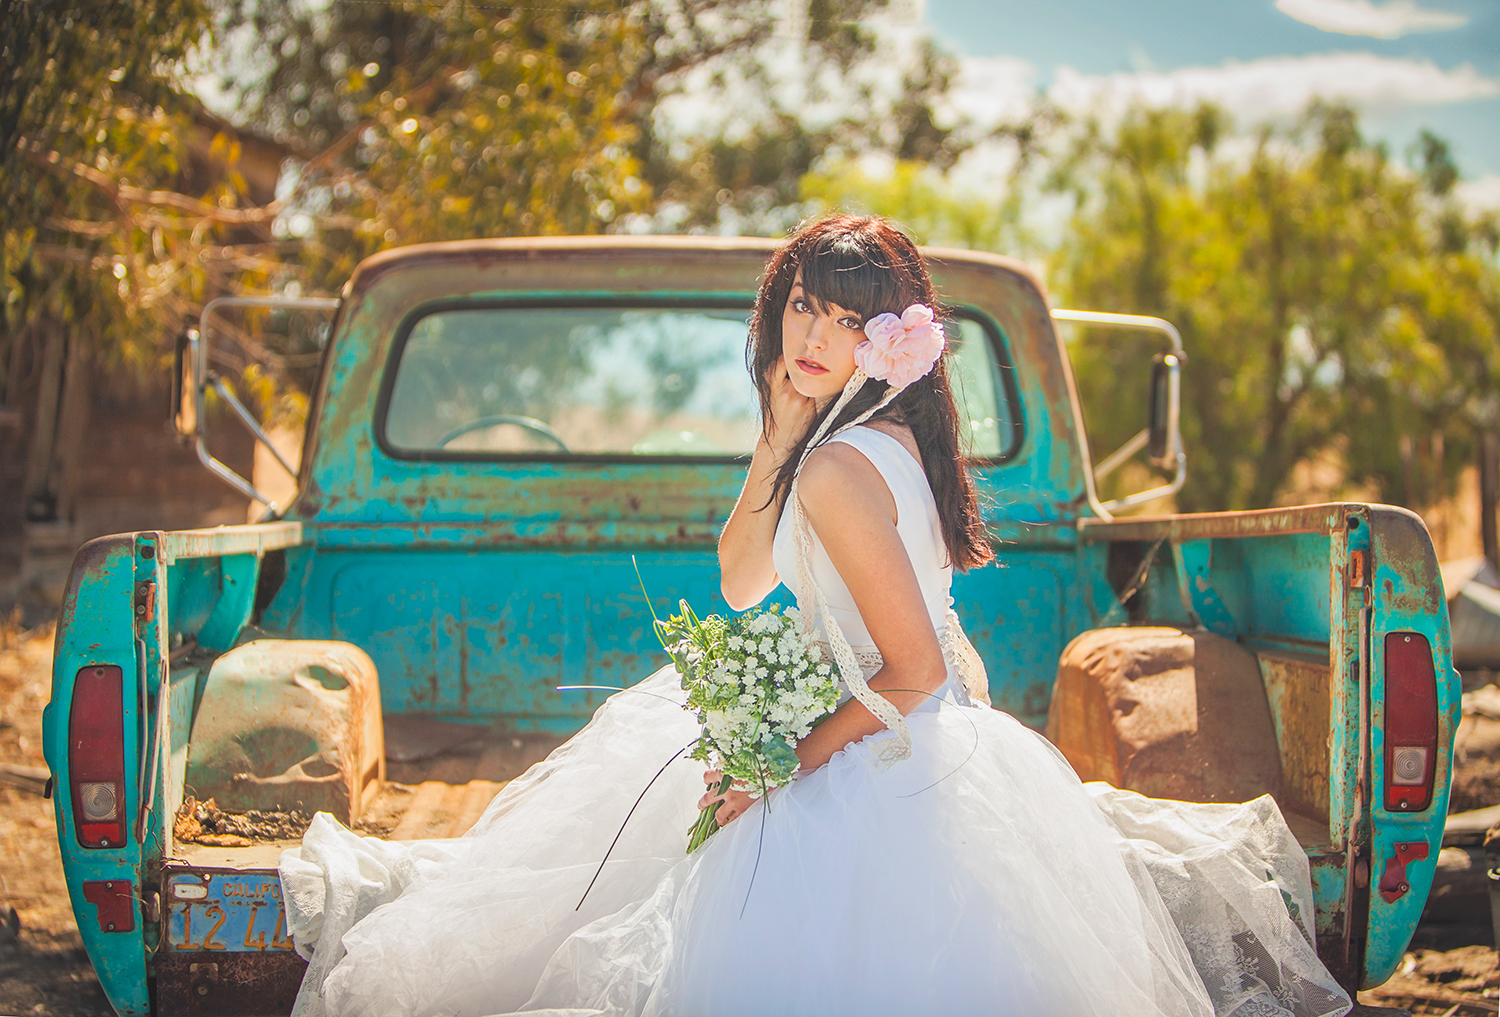 Dena_Rooney_Wedding_Photographer_Ranch_005.jpg